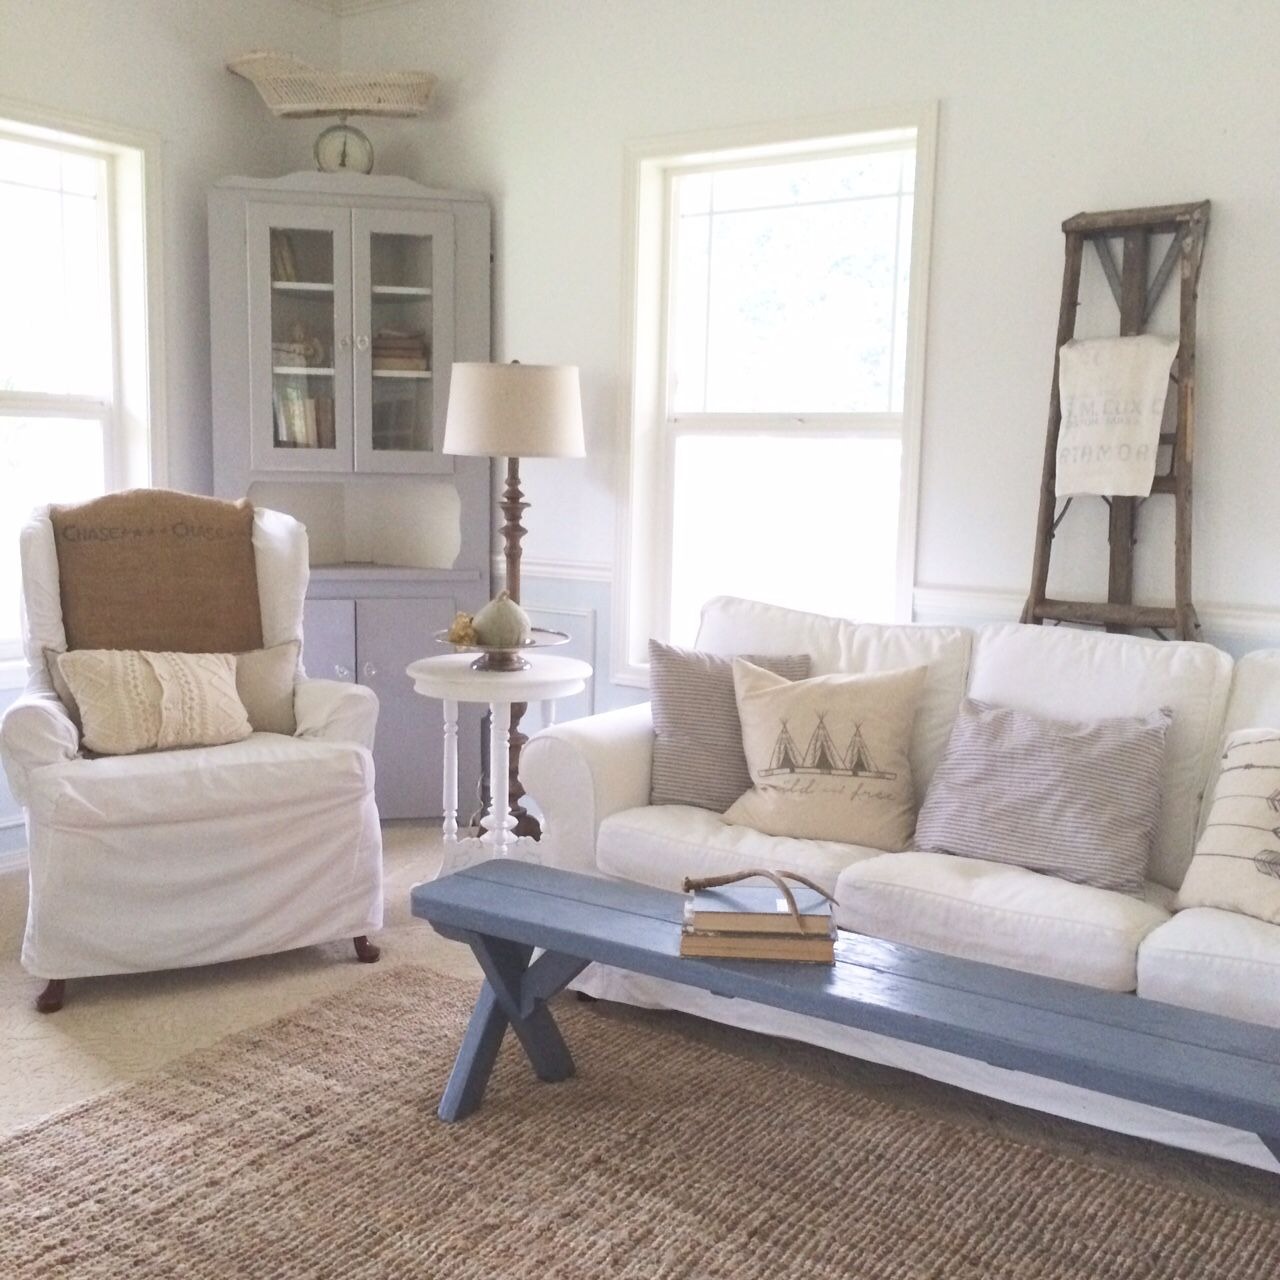 Vintage Country Living Room a blog about farmhouse style design, country living, home